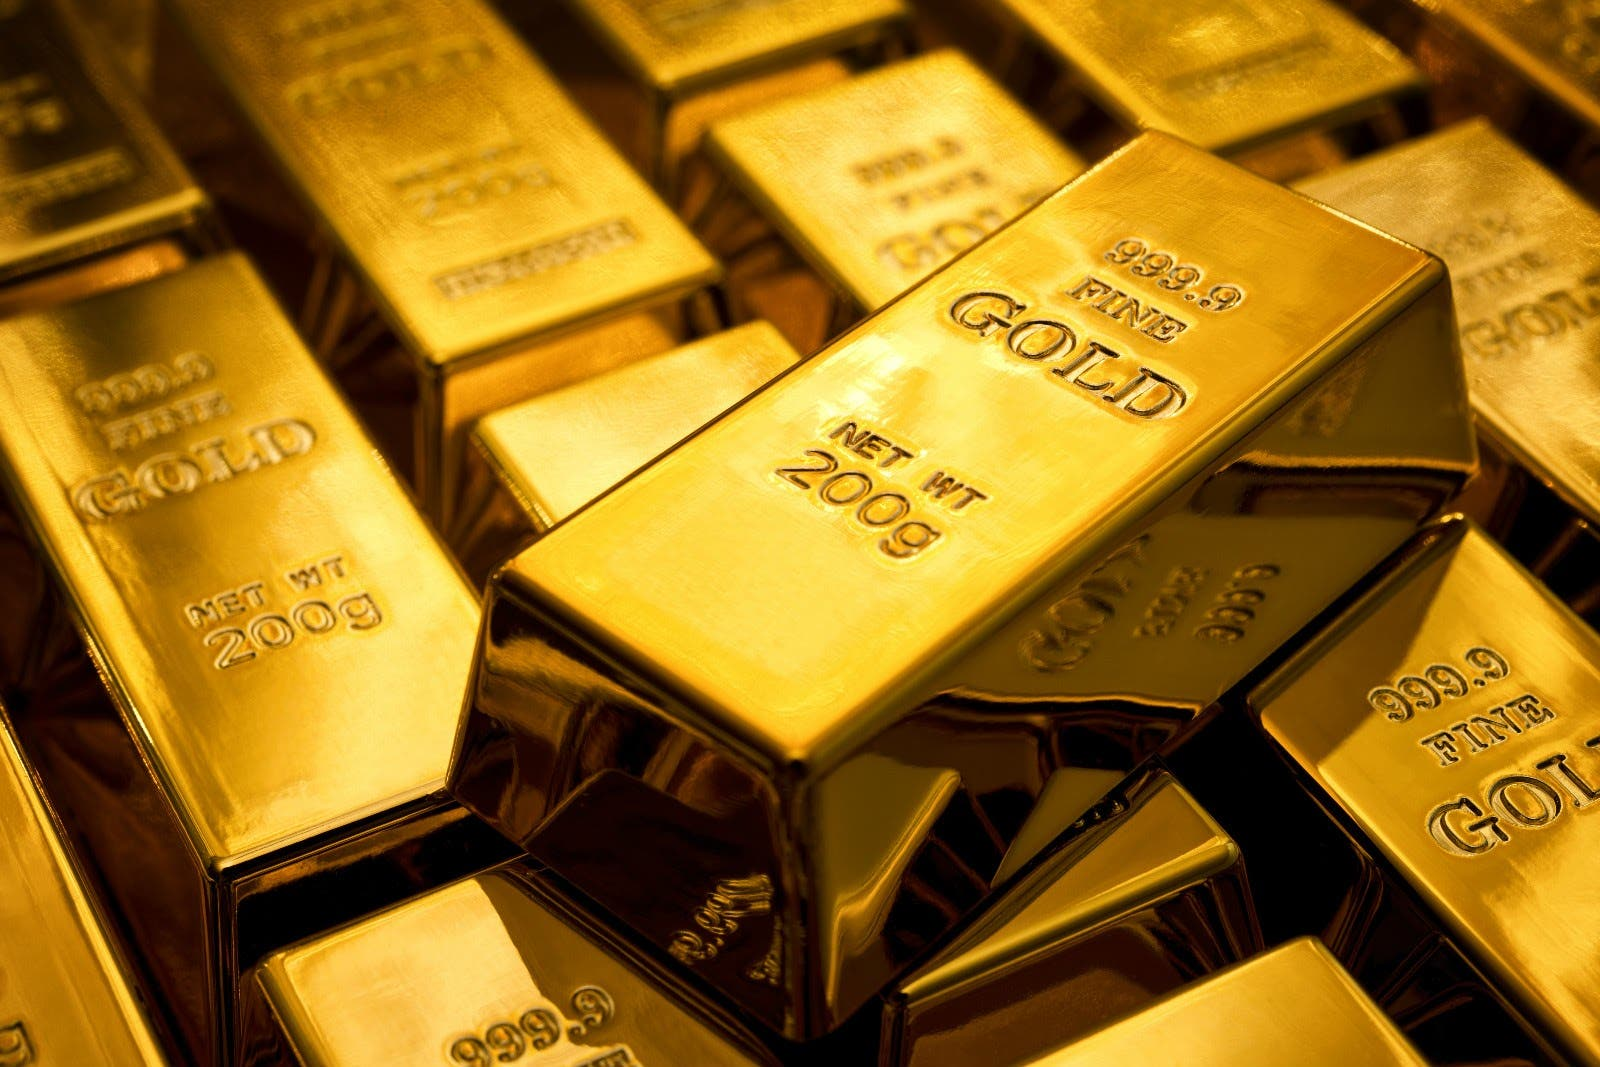 Up over 20% this year, gold has performed strongly hitting a new all-time high.